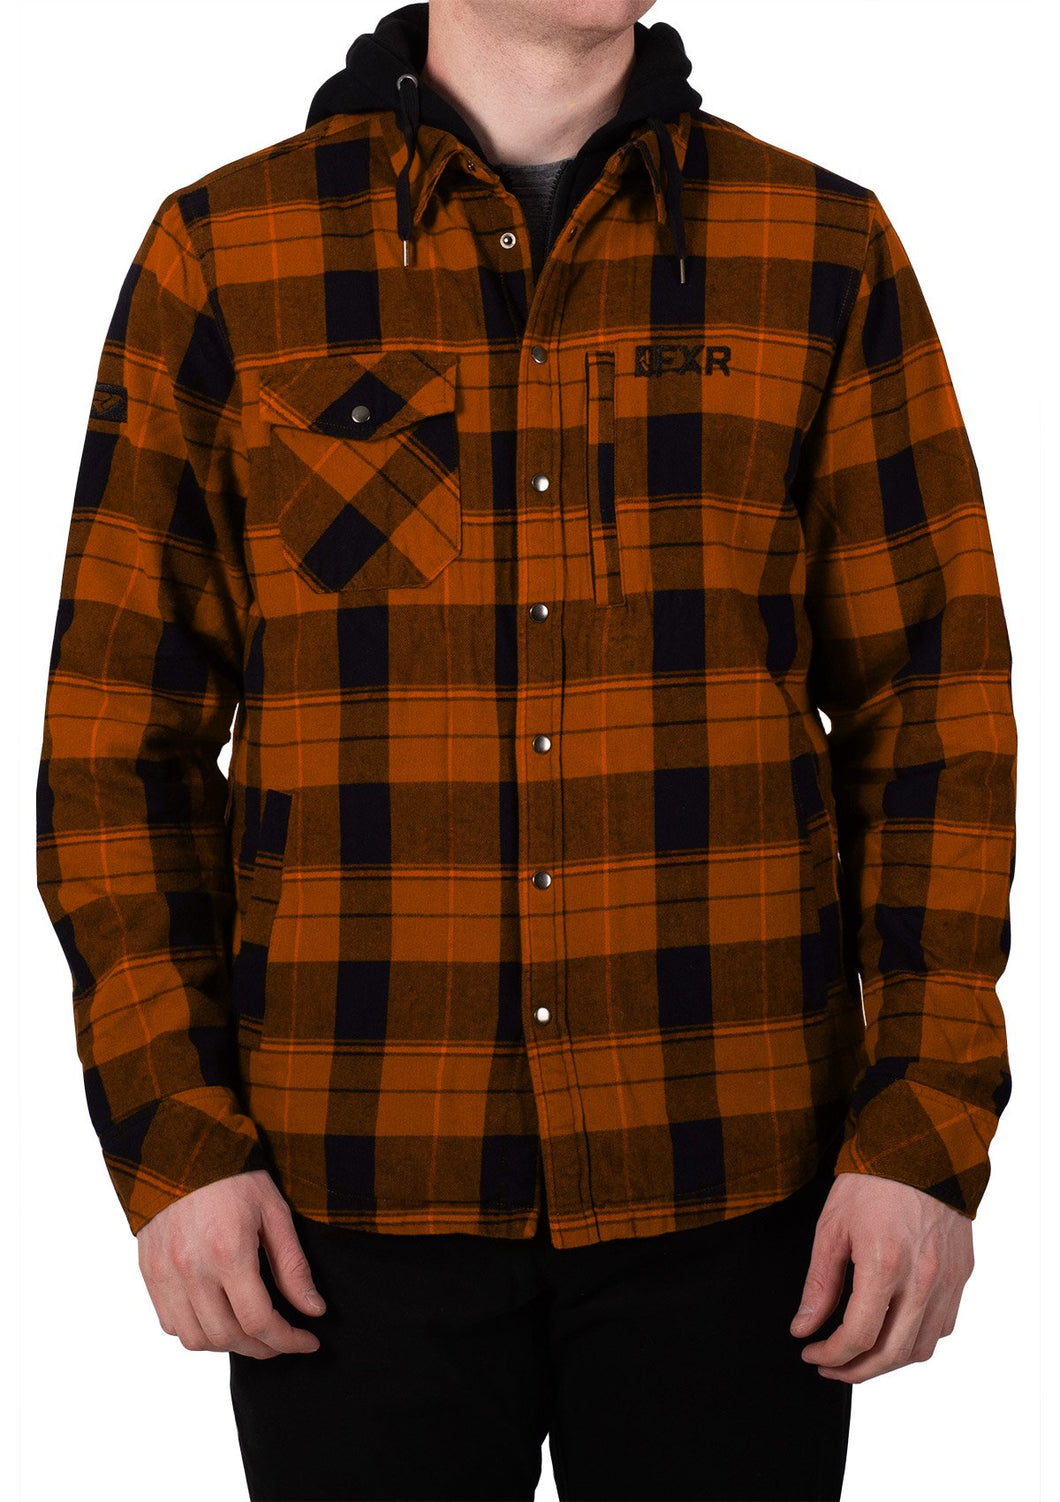 M Timber Plaid Insulated Jacket 20